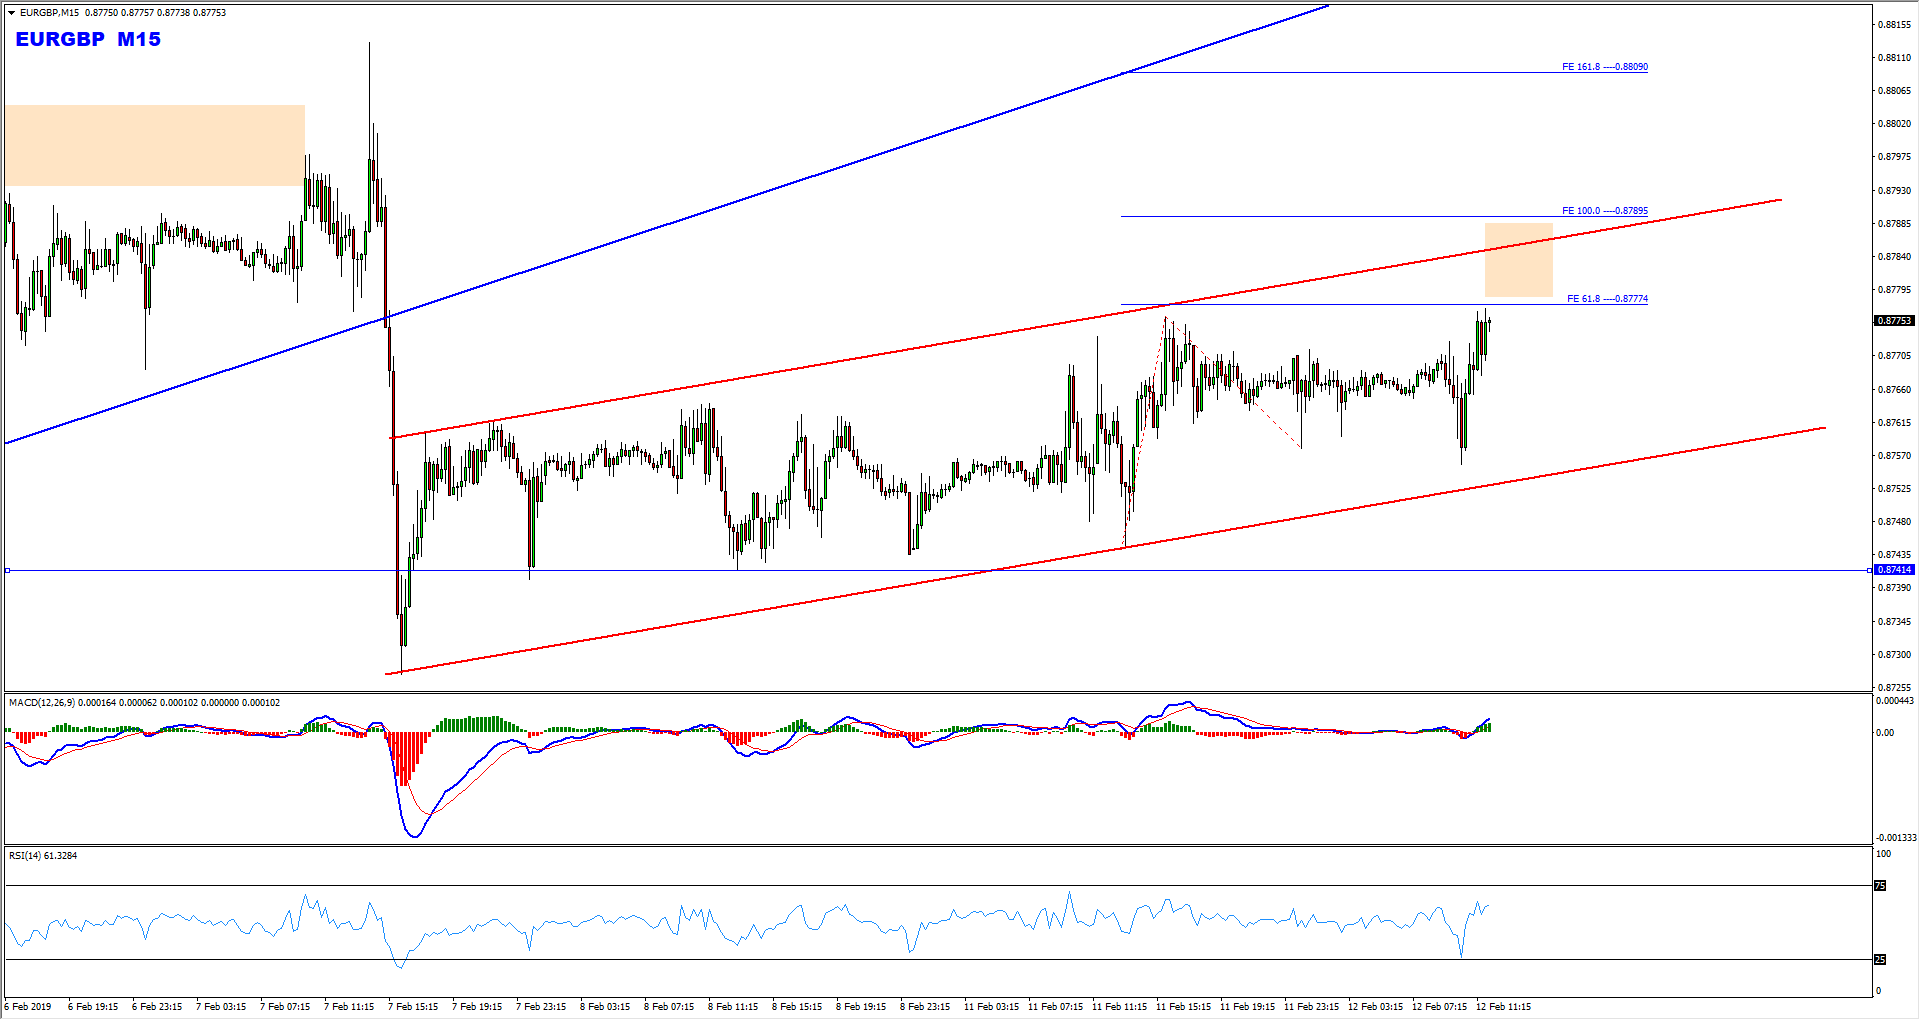 EURGBP Channel Provides Sell Opportunity